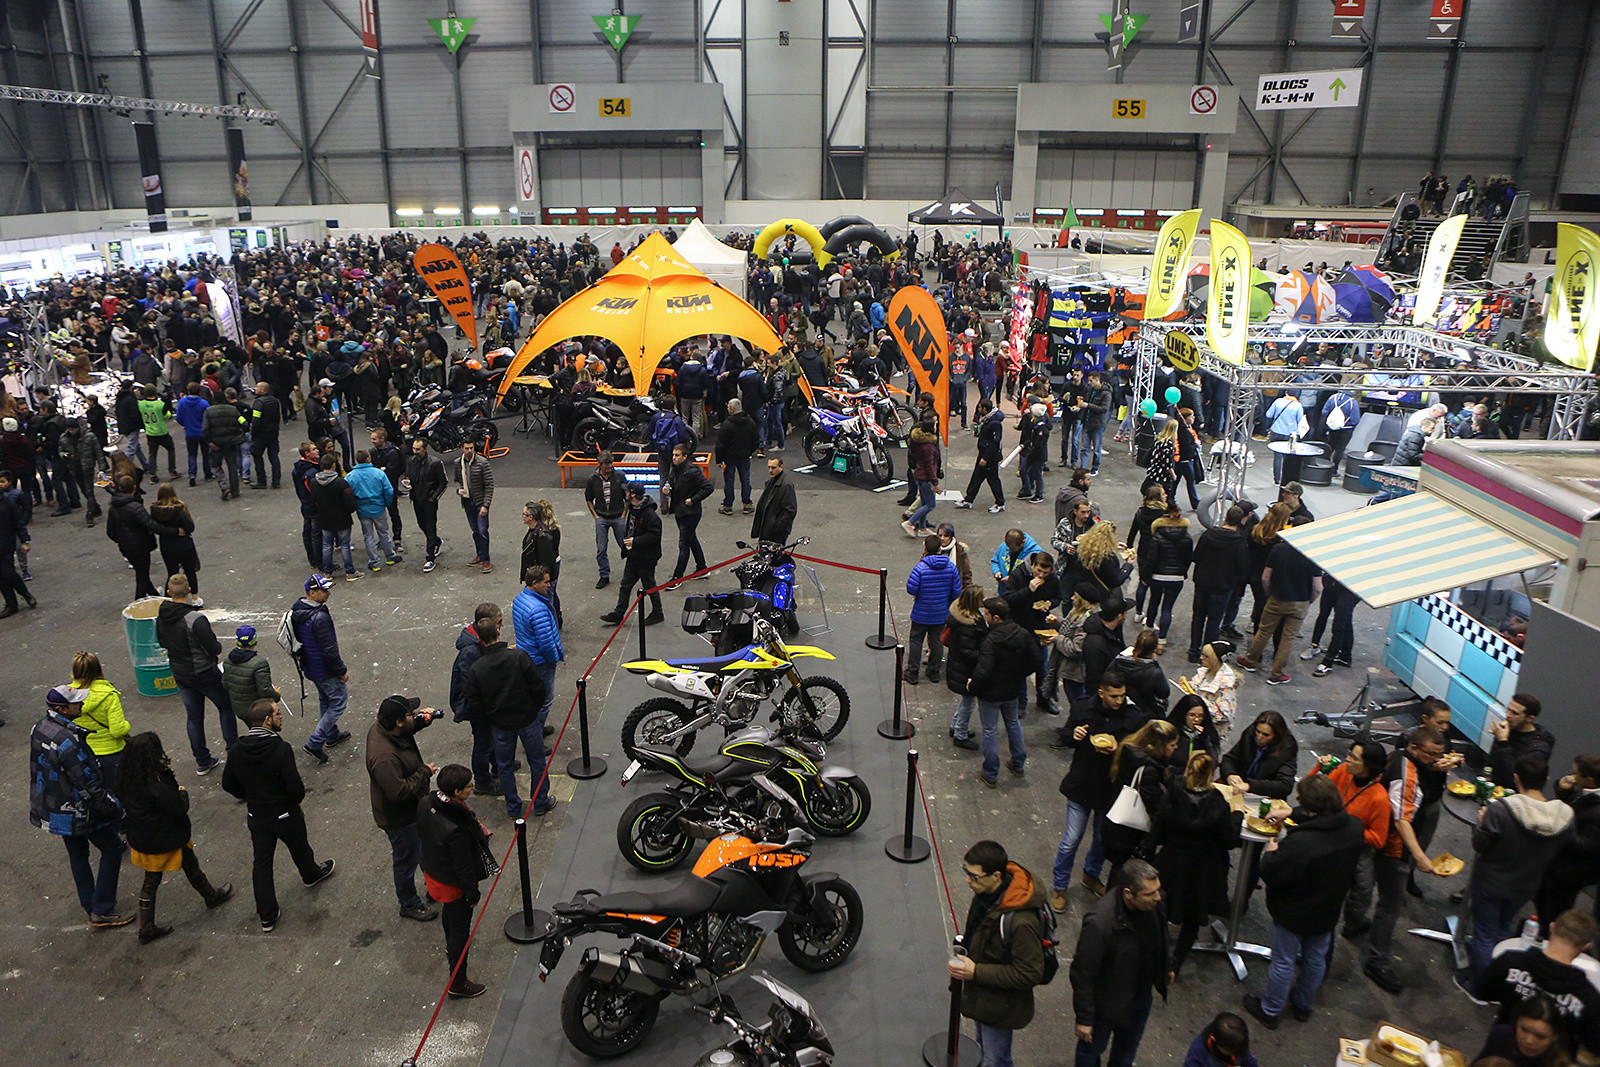 Besides the race action, there's also a huge expo attached to it, with displays from all the manufacturers.